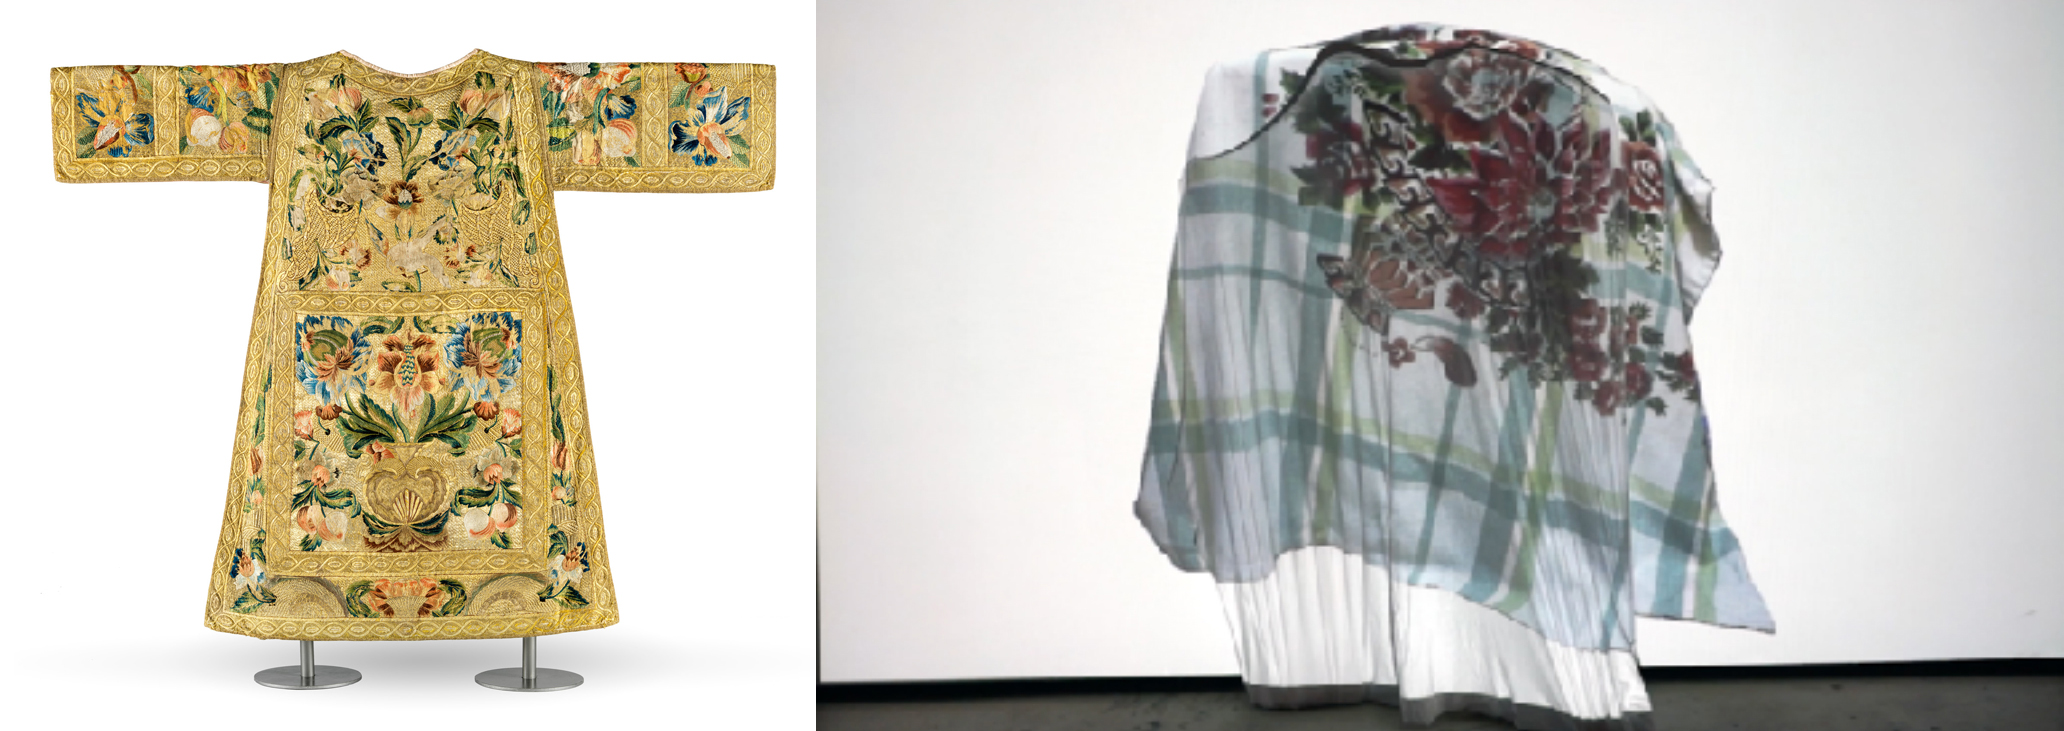 Left (LACMA selection): Set of Ecclesiastical Vestments (Dalmatic), Mexico, c. 1730, Los Angeles County Museum of Art, Costume Council Fund, photo © Museum Associates/LACMA; Right (Artist work): Ching Ching Cheng, (re)Build, 2018, single channel video, 6 minutes, photo courtesy of the artist